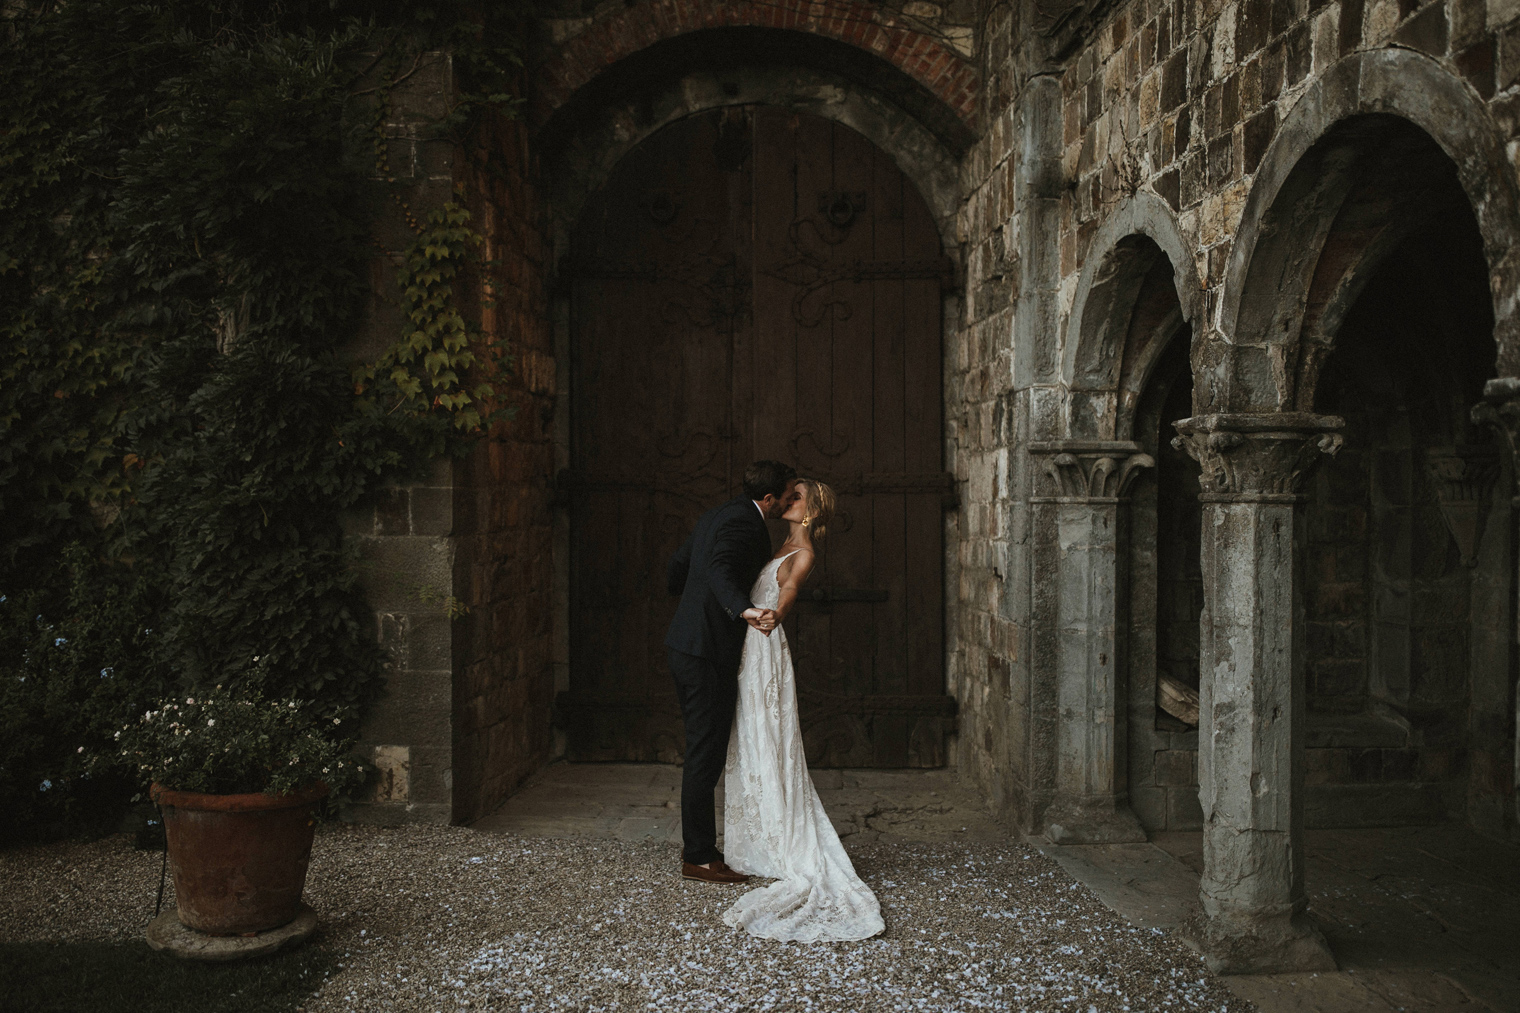 Bride and groom kissing after wedding ceremony in Italy